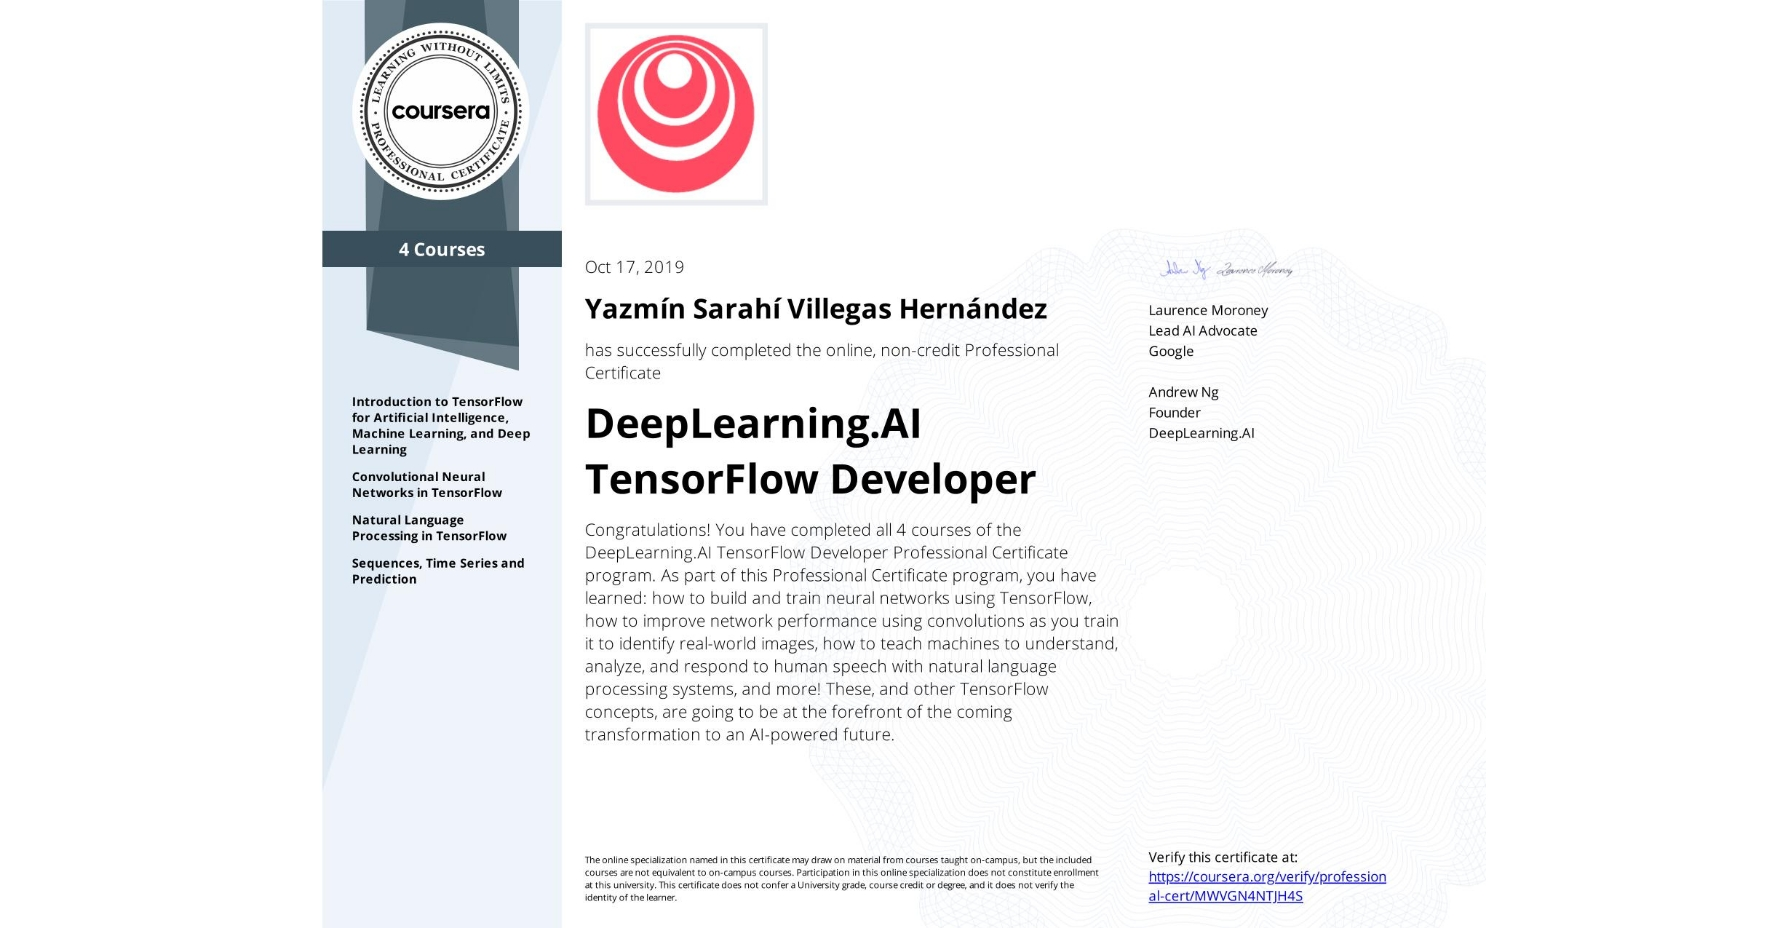 View certificate for Yazmín Sarahí Villegas Hernández, DeepLearning.AI TensorFlow Developer, offered through Coursera. Congratulations! You have completed all 4 courses of the DeepLearning.AI TensorFlow Developer Professional Certificate program.   As part of this Professional Certificate program, you have learned: how to build and train neural networks using TensorFlow, how to improve network performance using convolutions as you train it to identify real-world images, how to teach machines to understand, analyze, and respond to human speech with natural language processing systems, and more!  These, and other TensorFlow concepts, are going to be at the forefront of the coming transformation to an AI-powered future.